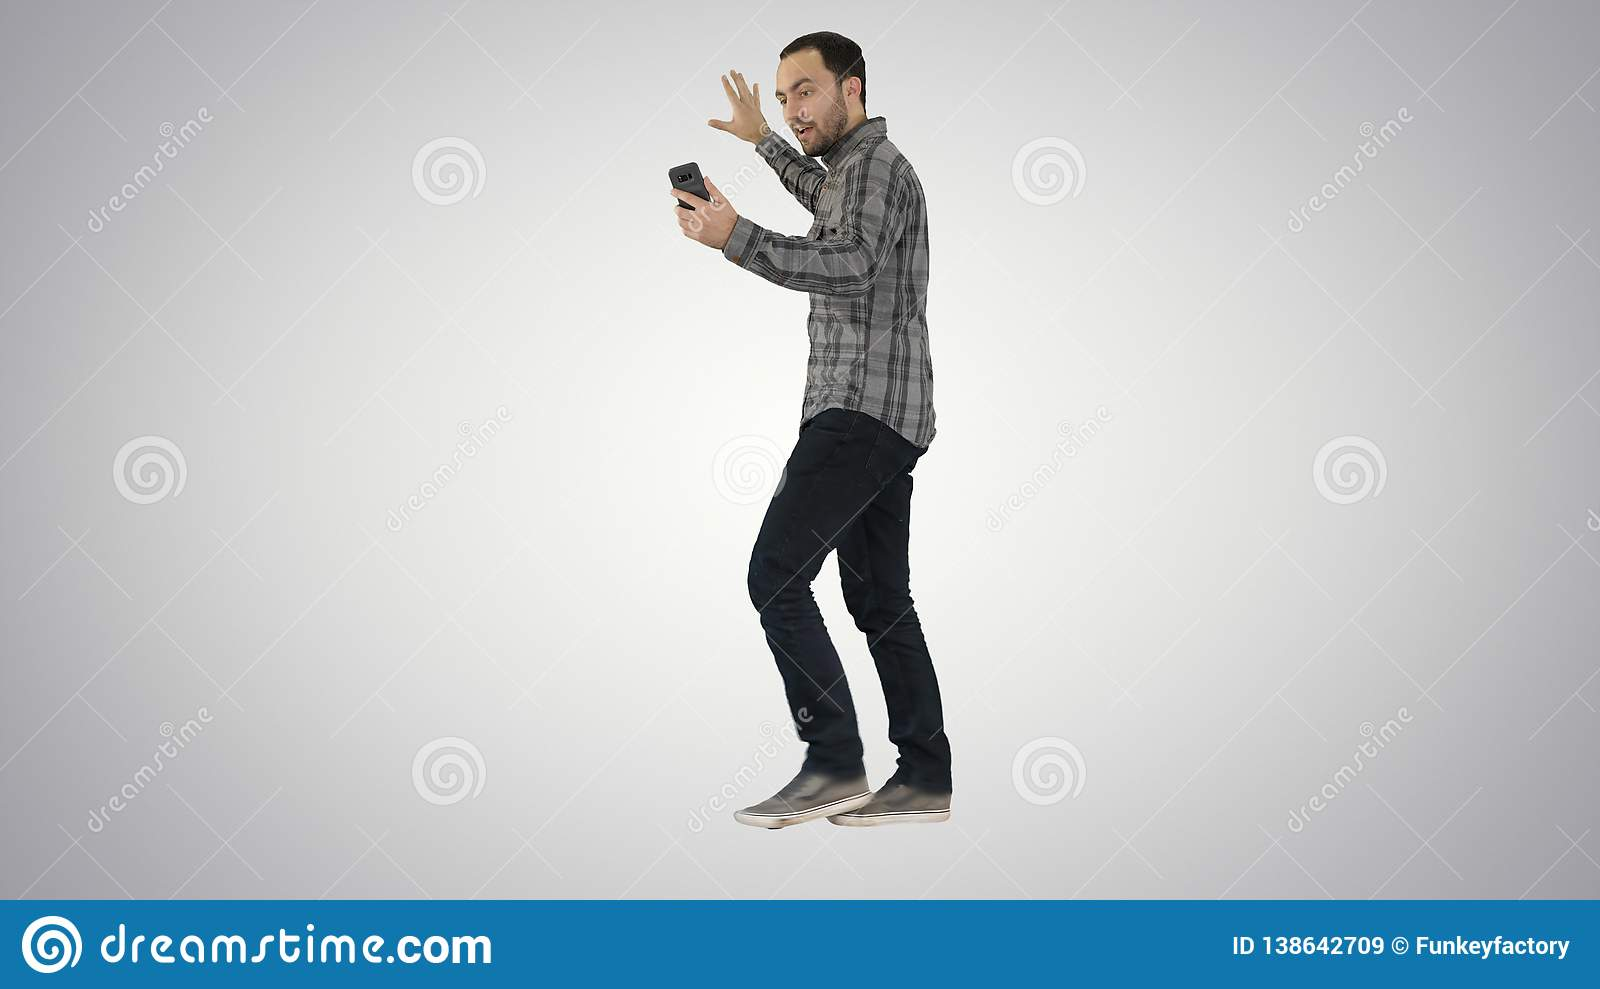 Handsome bearded man recording vlog blog with smartphone while walking on gradient background.